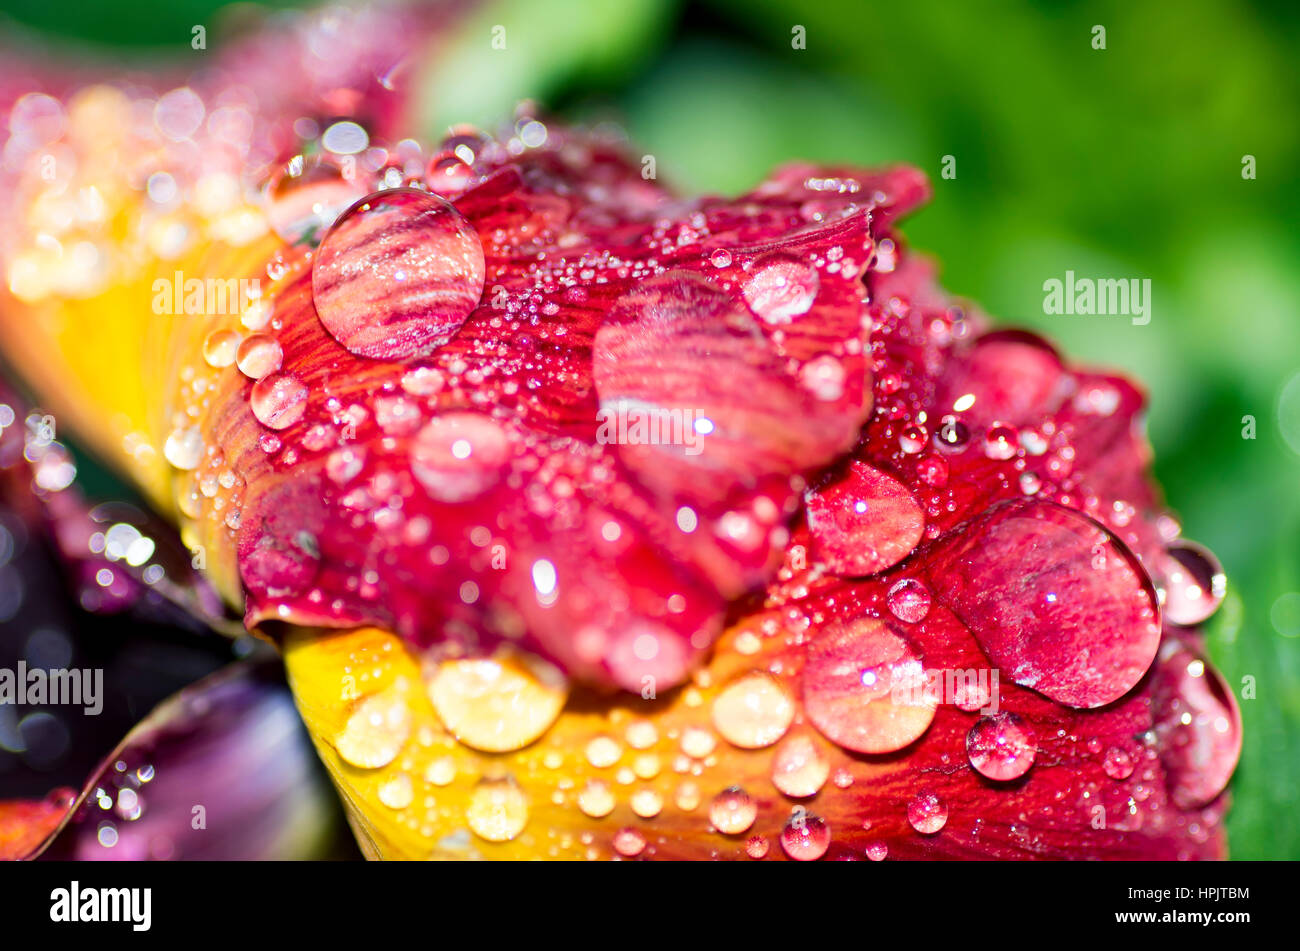 Water Drops on Flower - Stock Image